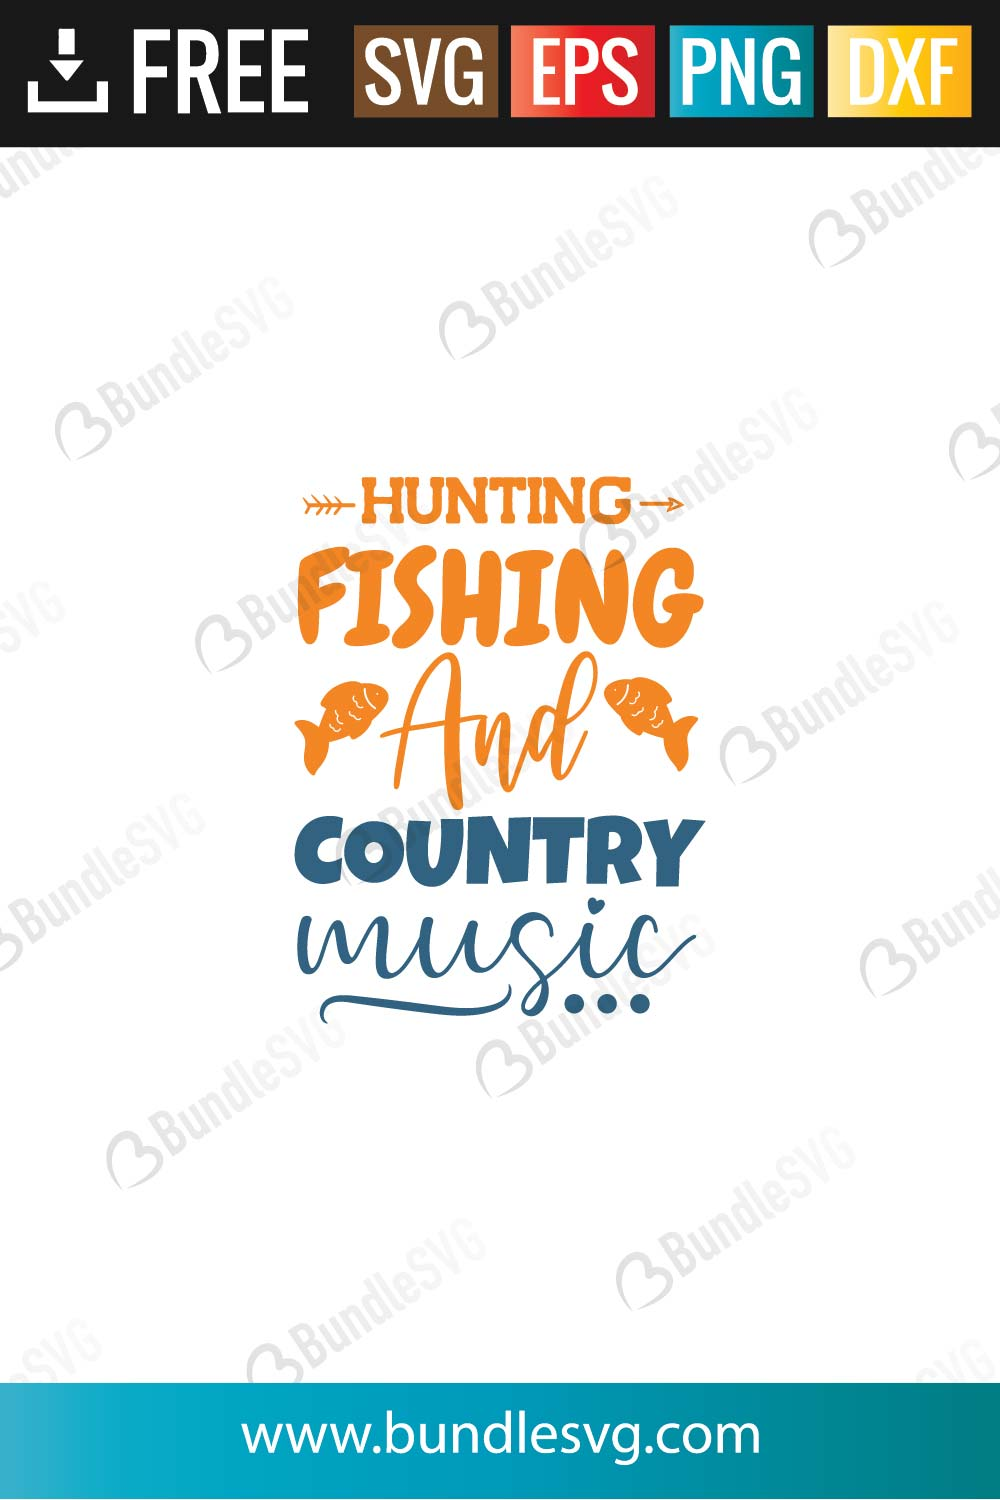 Download Hunting Fishing And Country Music Svg Cut Files Bundlesvg